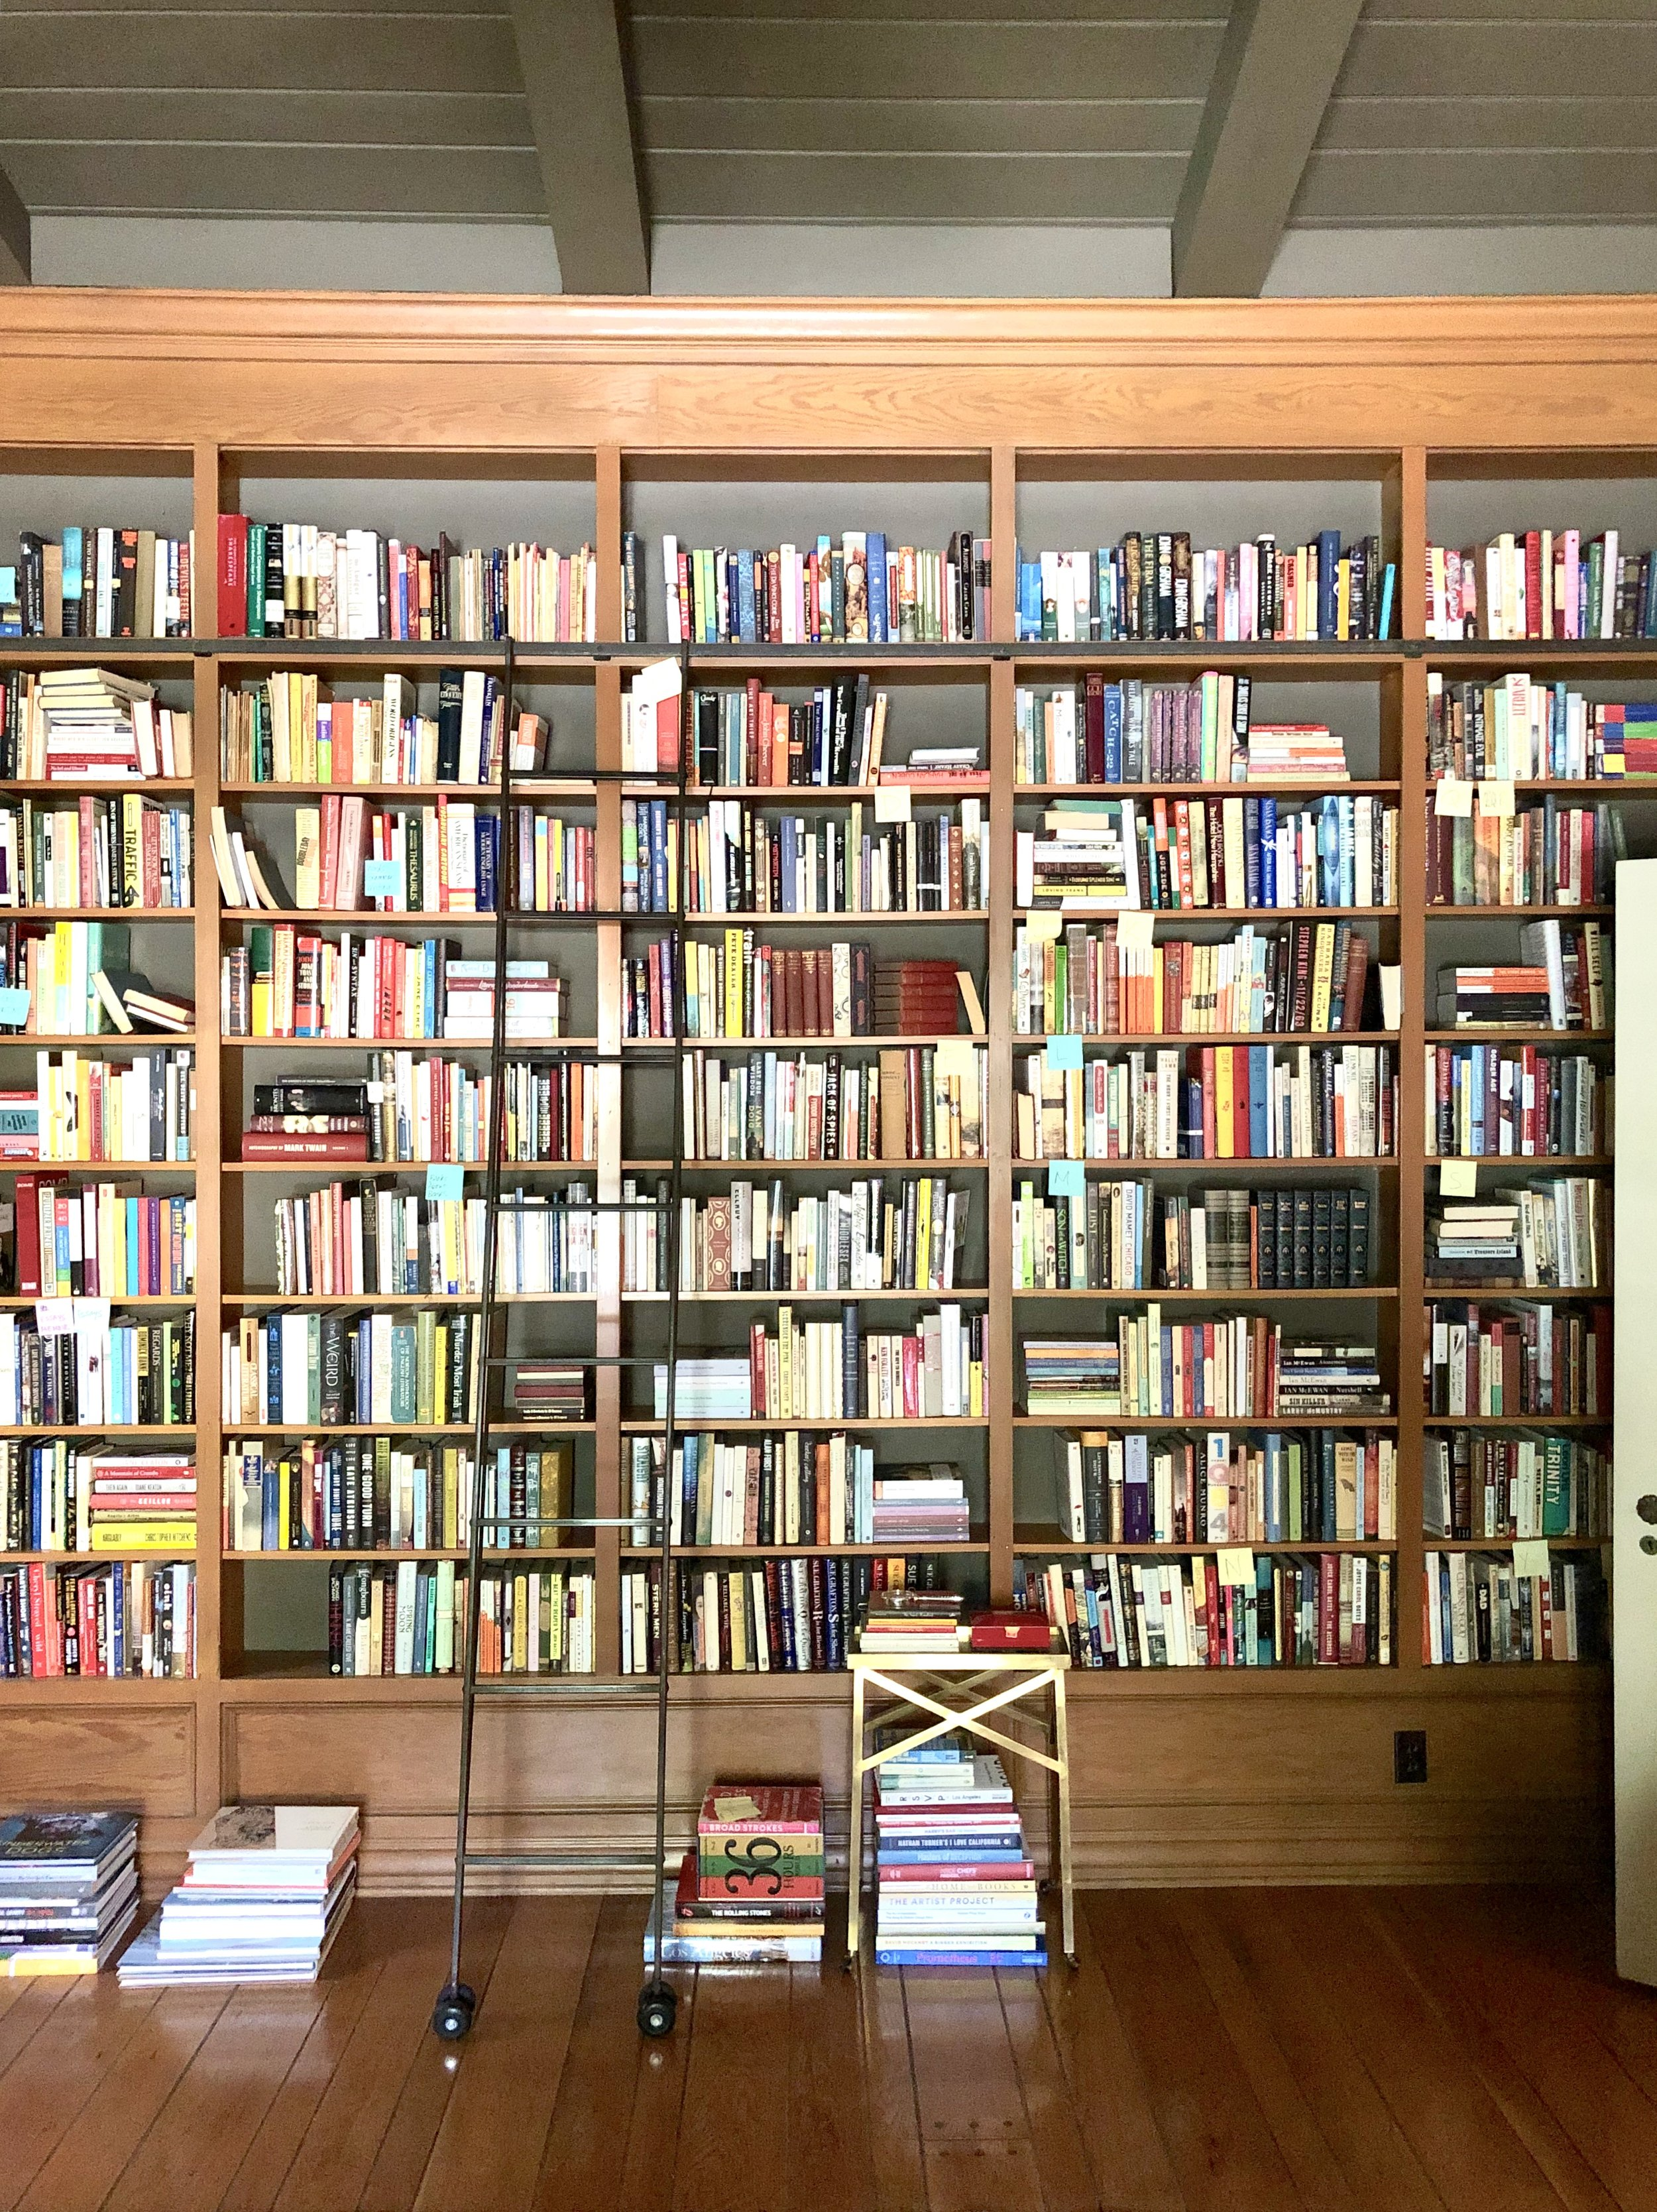 Organization in process: the fiction & literature section being alphabetized. Los Angeles-area residential library.